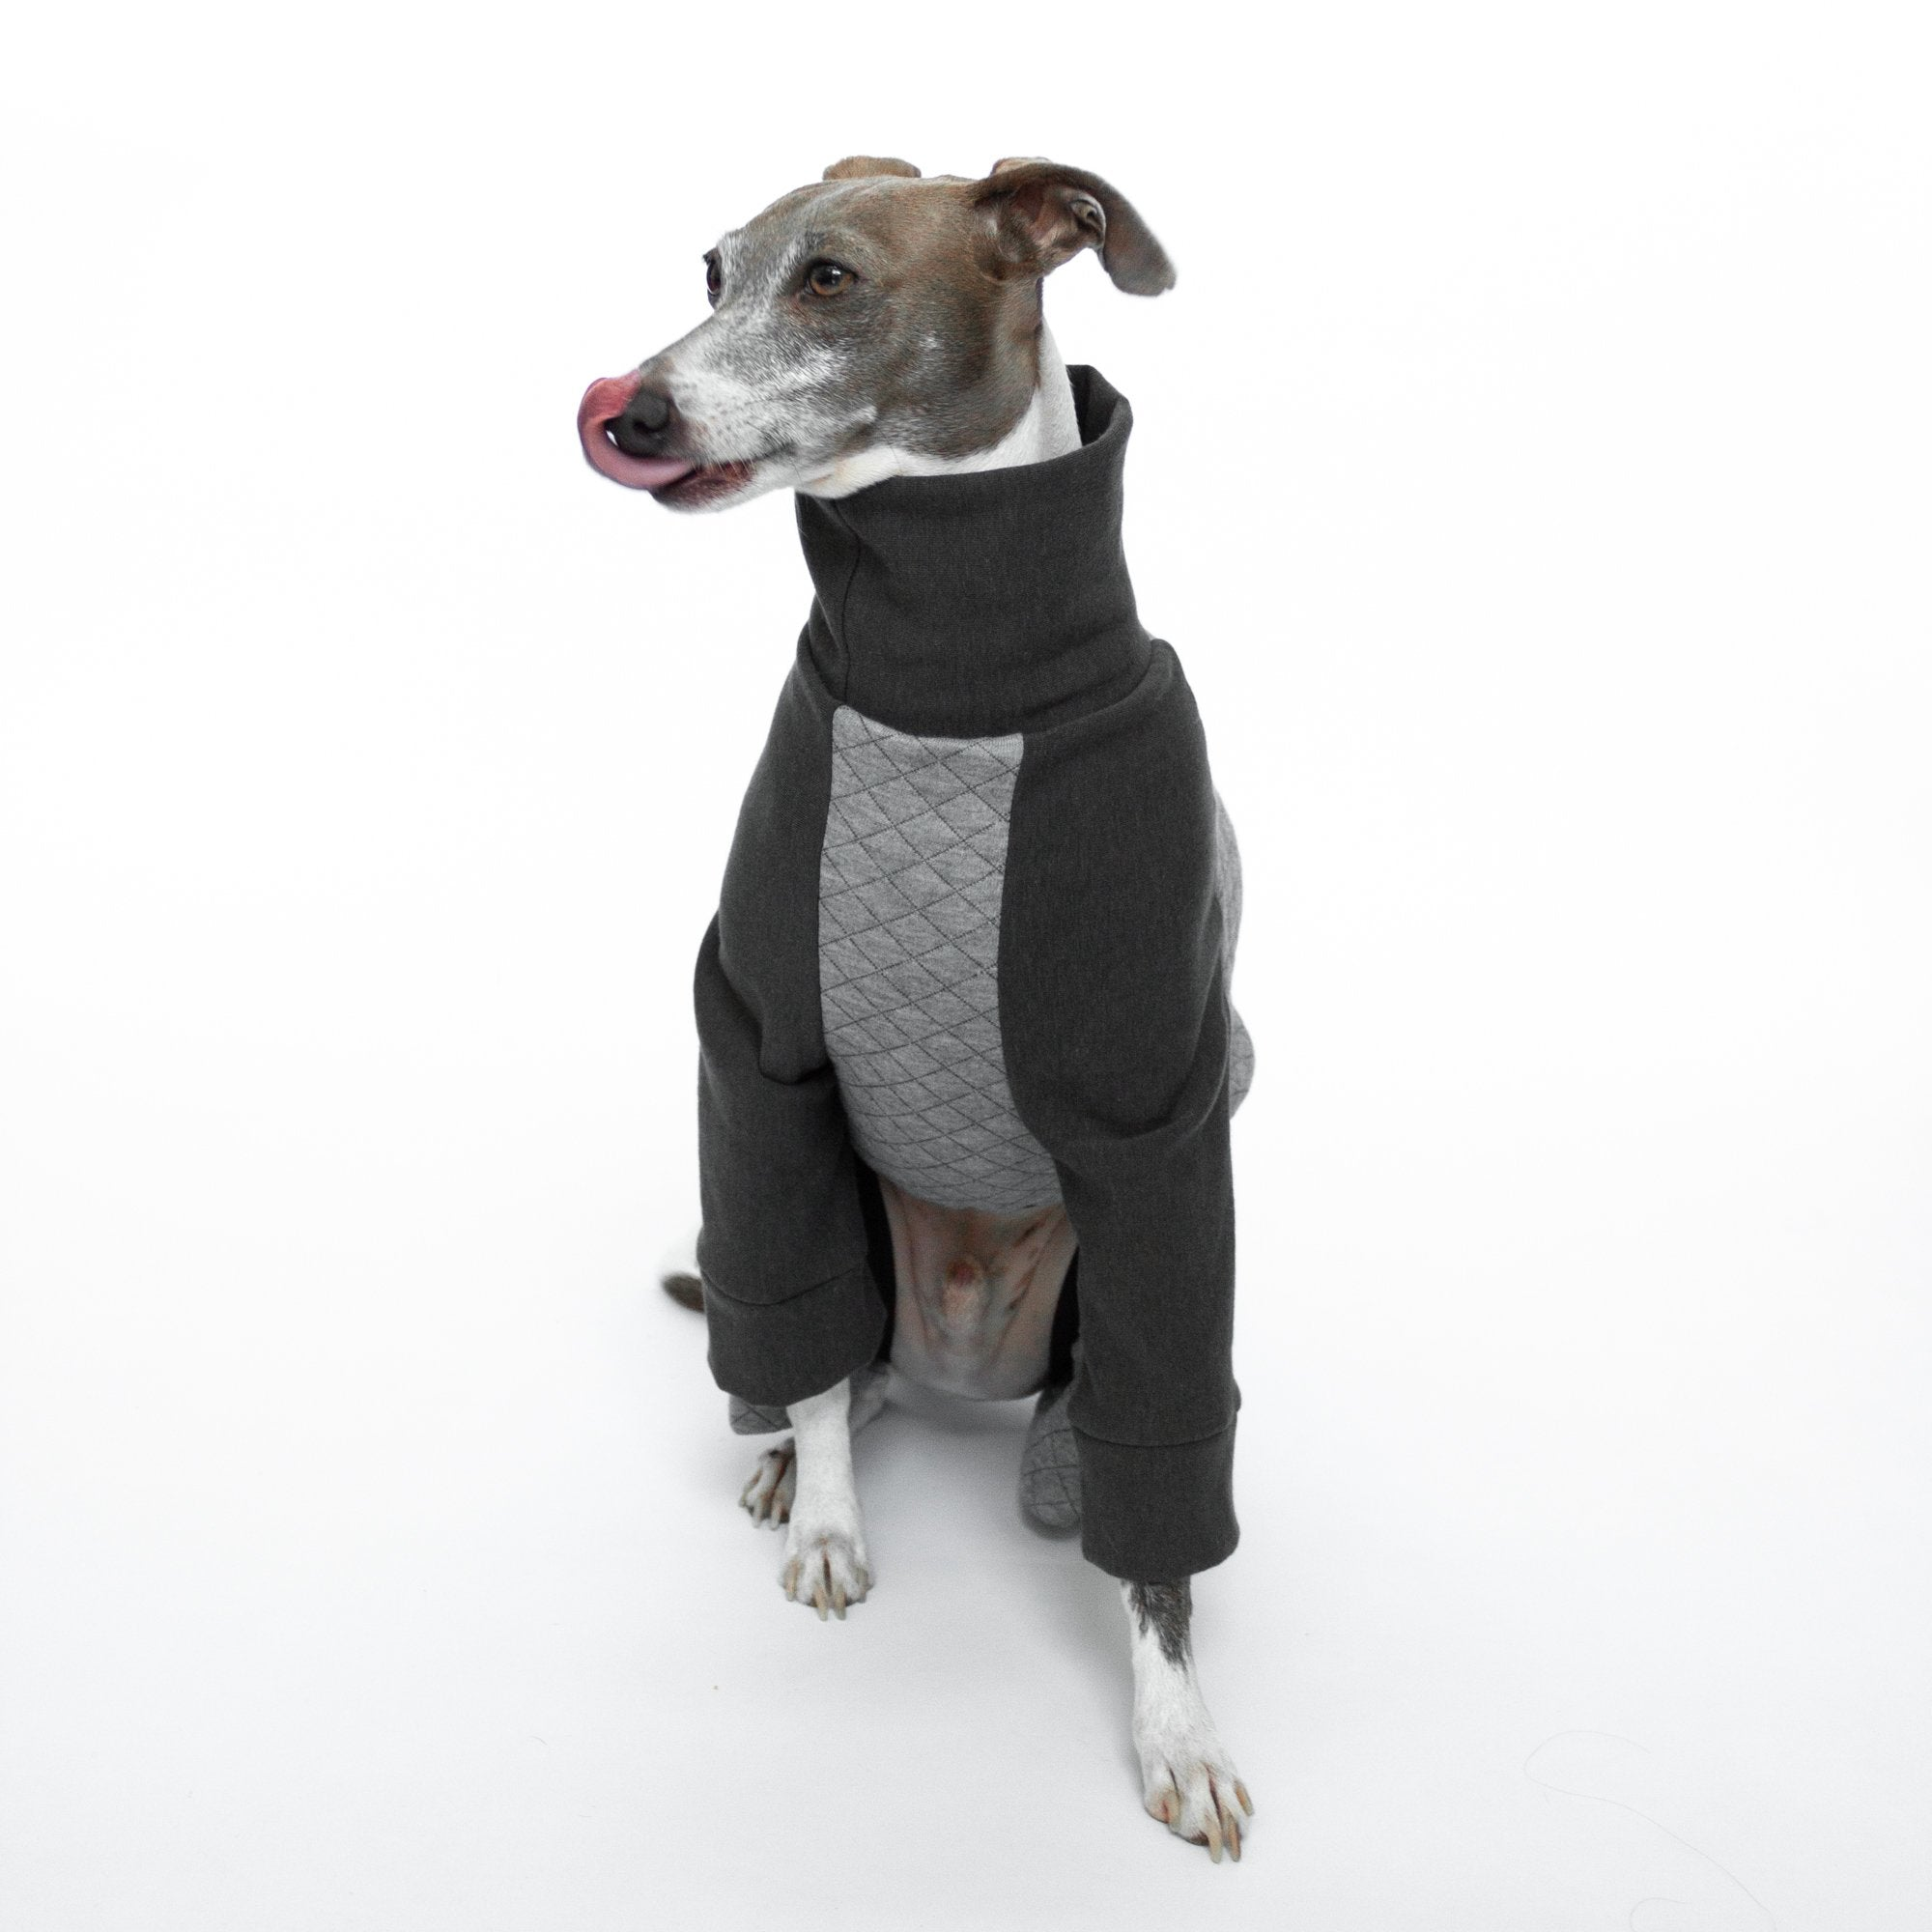 Kuvfur-dog-pajamas-onesie-quilted-grey-italian-greyhound